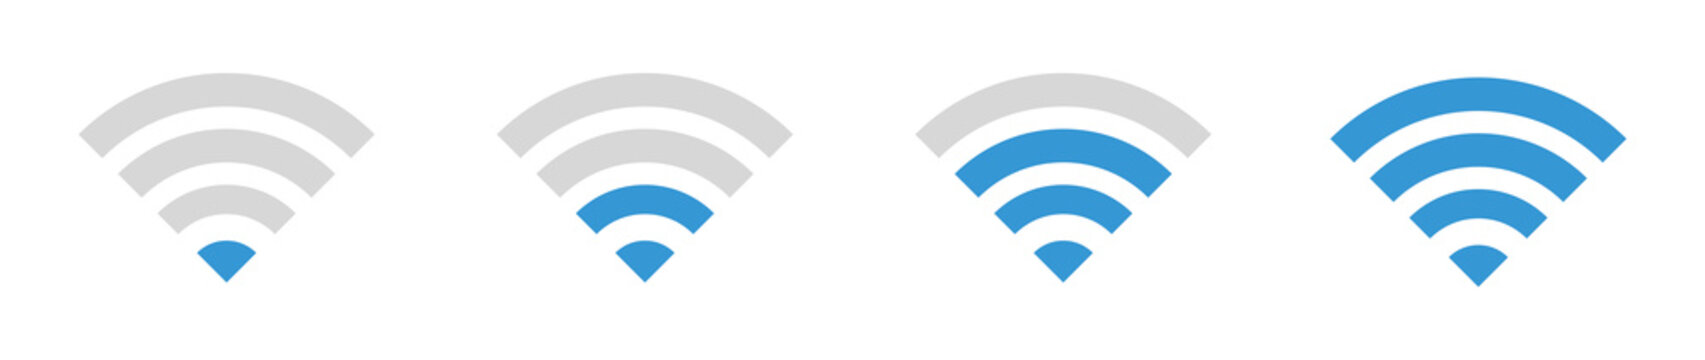 Set of Wi-Fi wireless signal icon. WiFi Zone Sign. Remote access and communication symbols. Wifi button. Vector illustration.